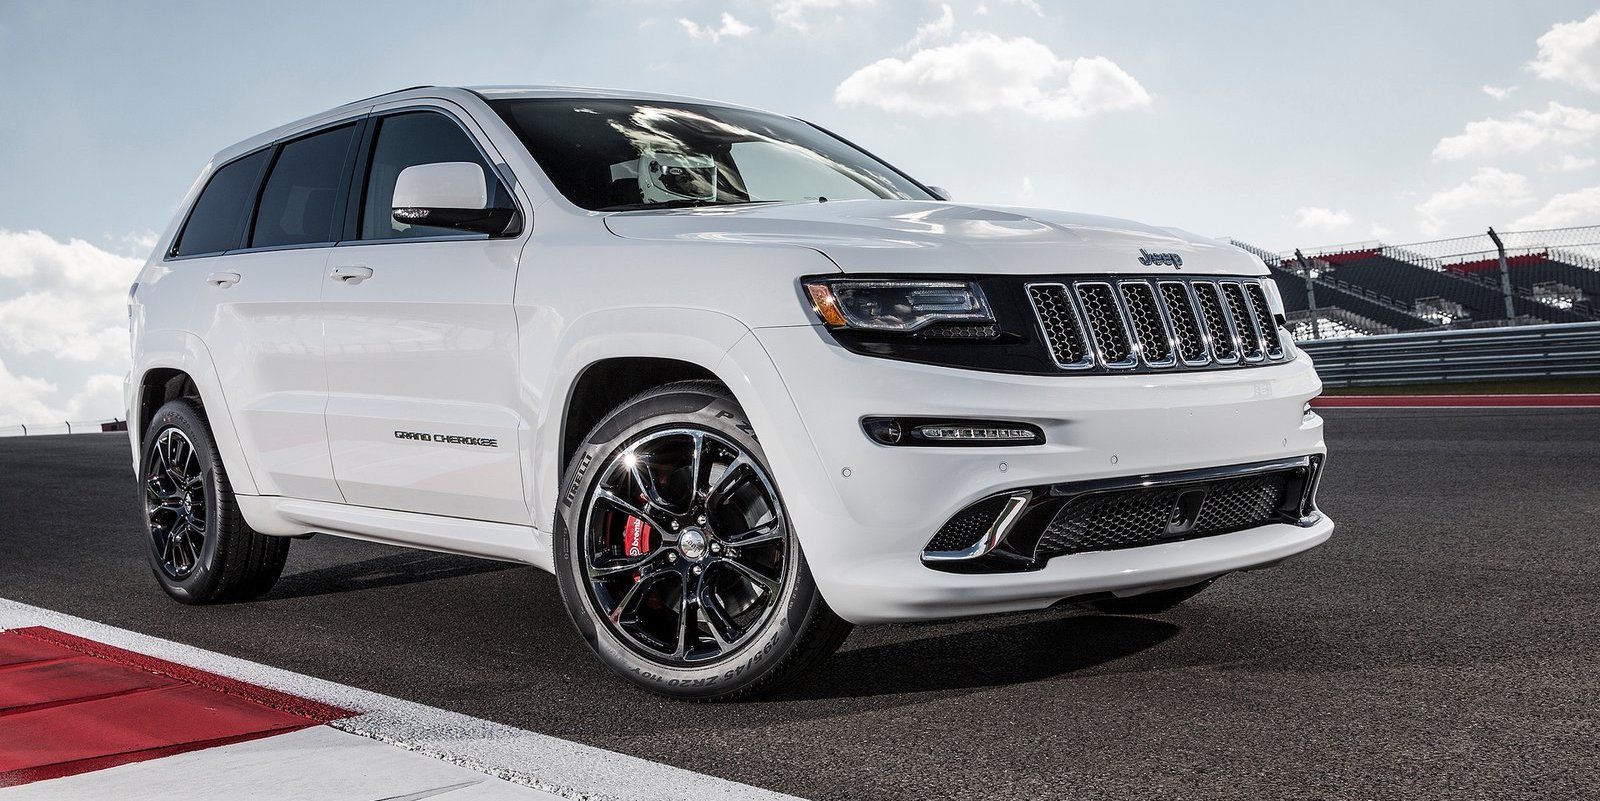 Jeep Grand Cherokee Hellcat Will Arrive in 2017